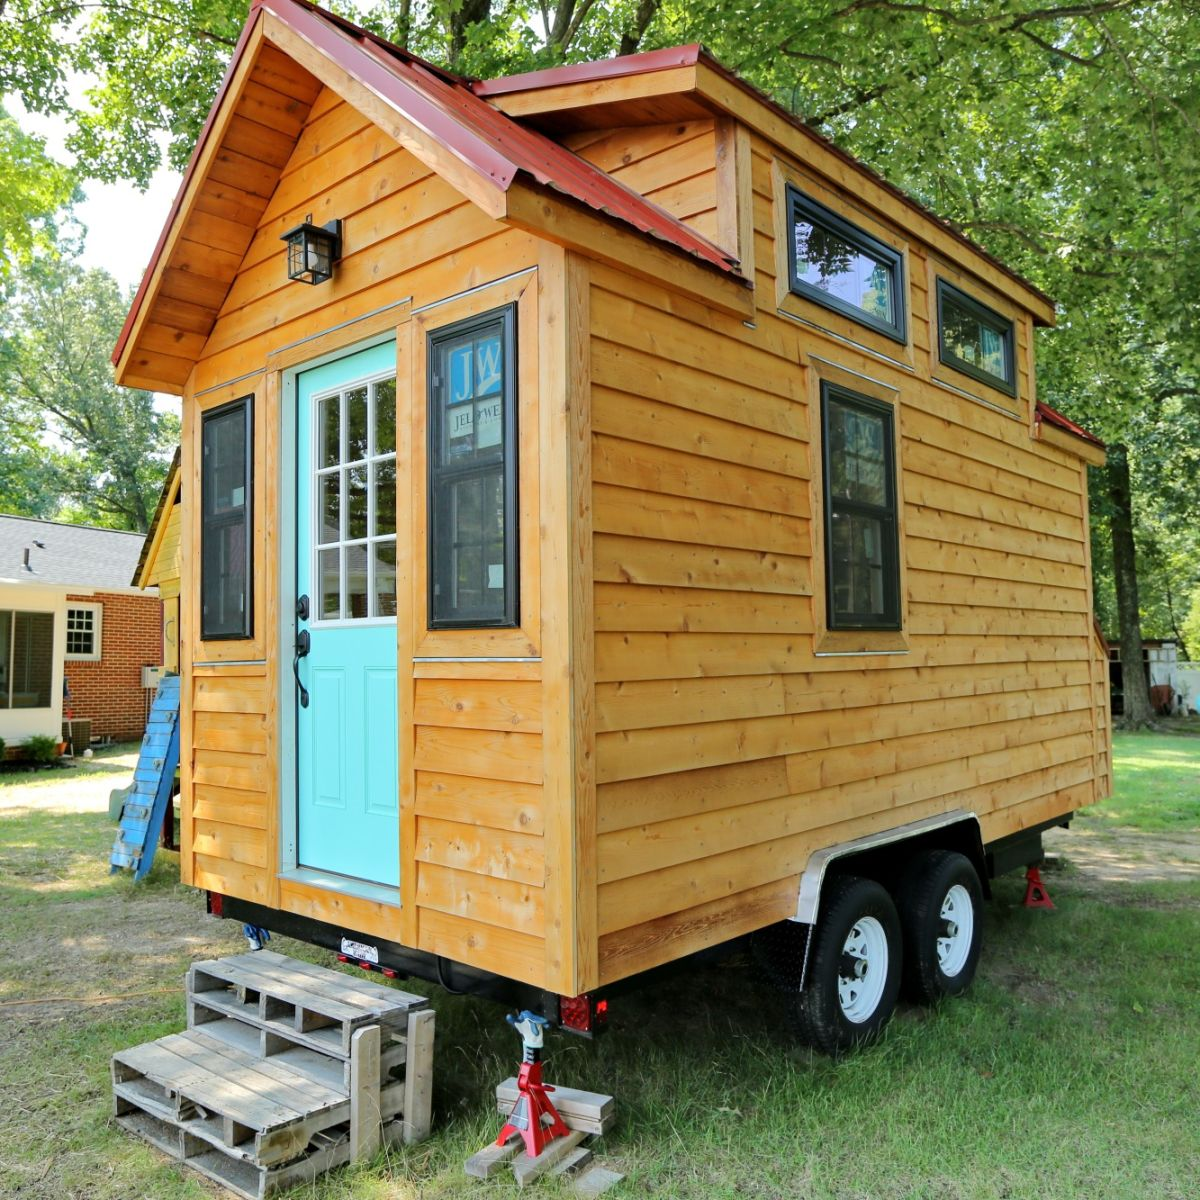 Perfect Tiny House - Tiny House for Sale in Longview, Texas - Tiny House  Listings